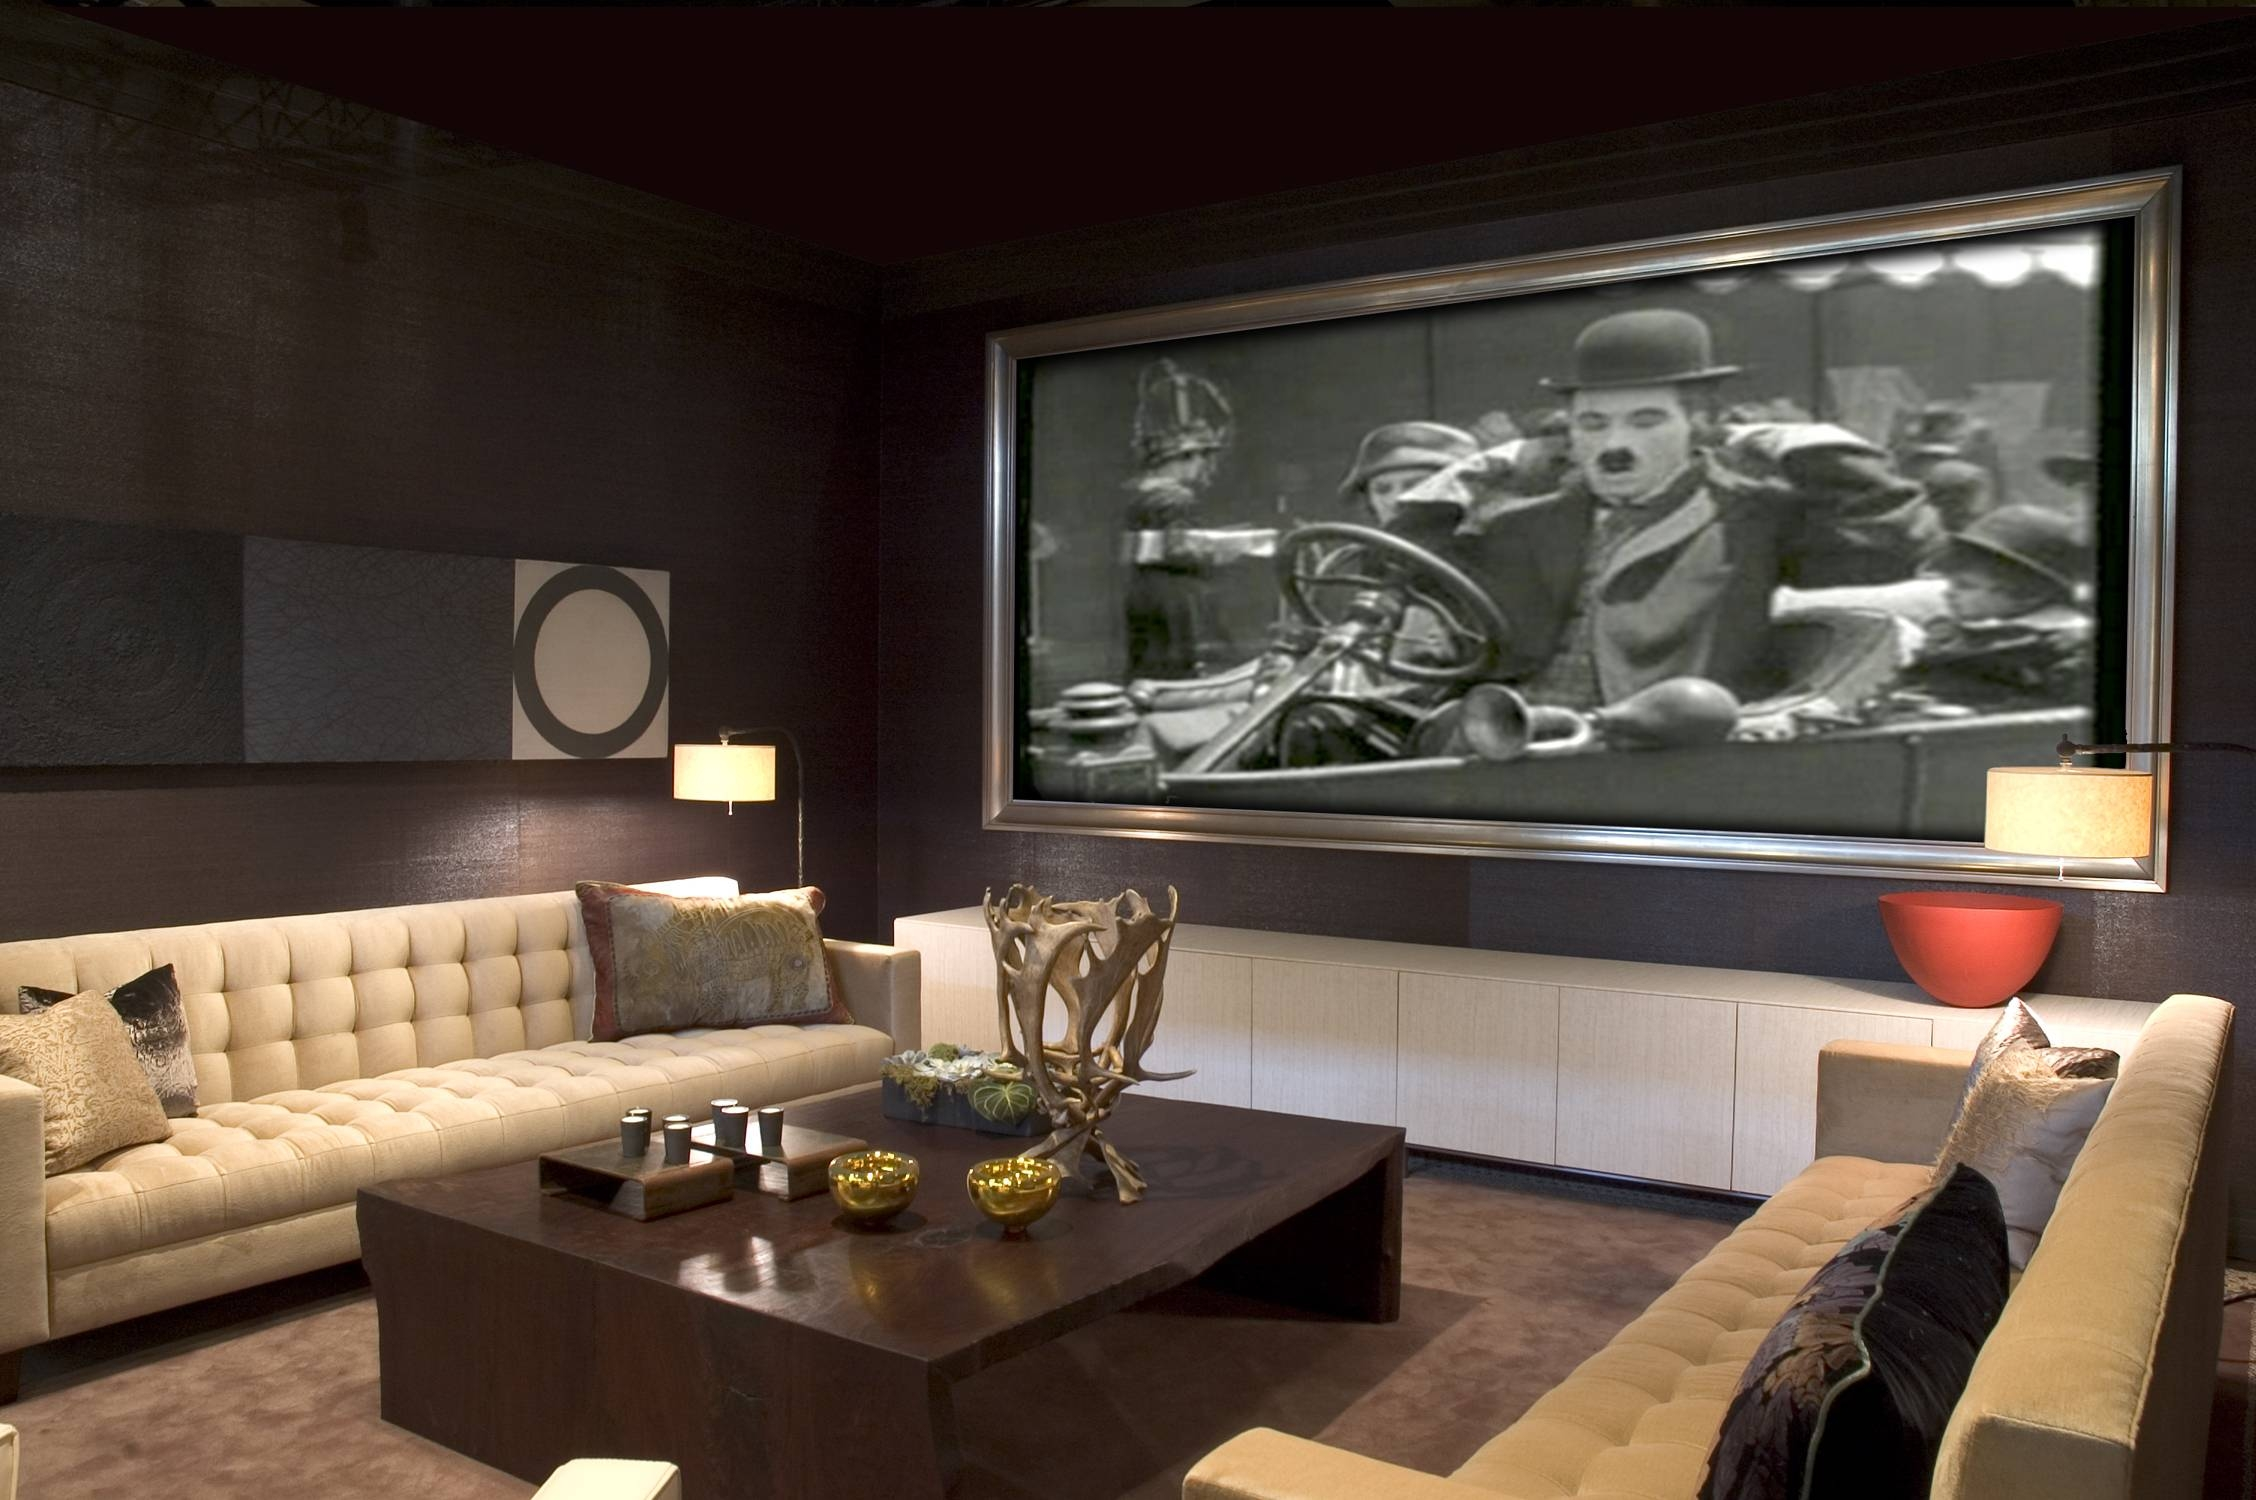 Interiors Furniture & Design: Media Rooms Designs Pertaining To Newest Media Room Wall Art (View 12 of 20)